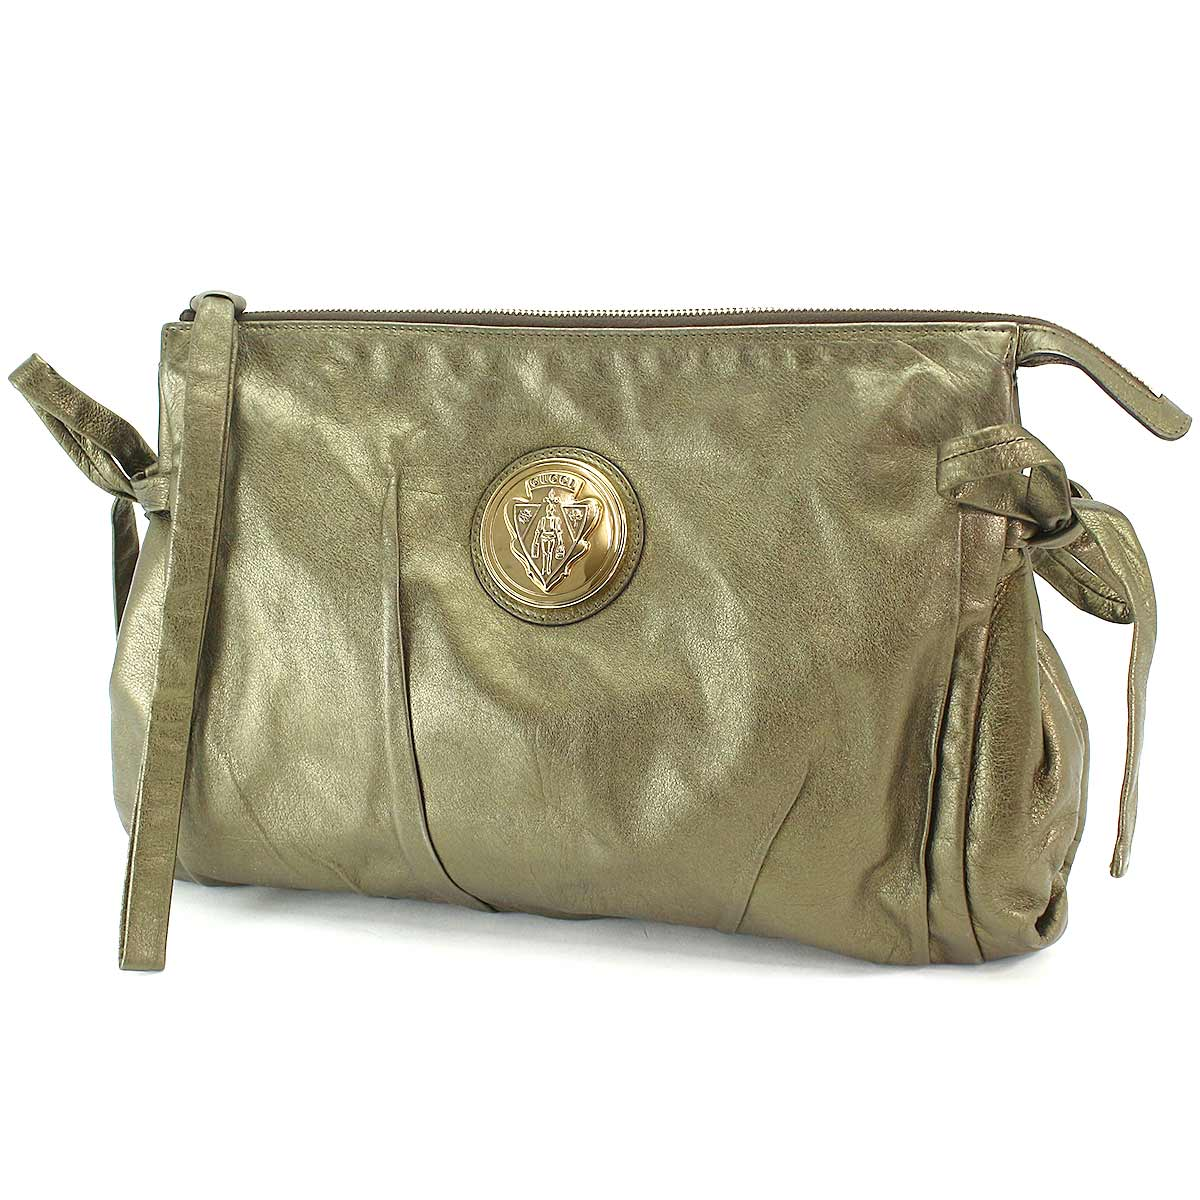 510dbdb7e GUCCI Hysteria Clutch Bag Metallic khaki Leather 197015 001364 ...